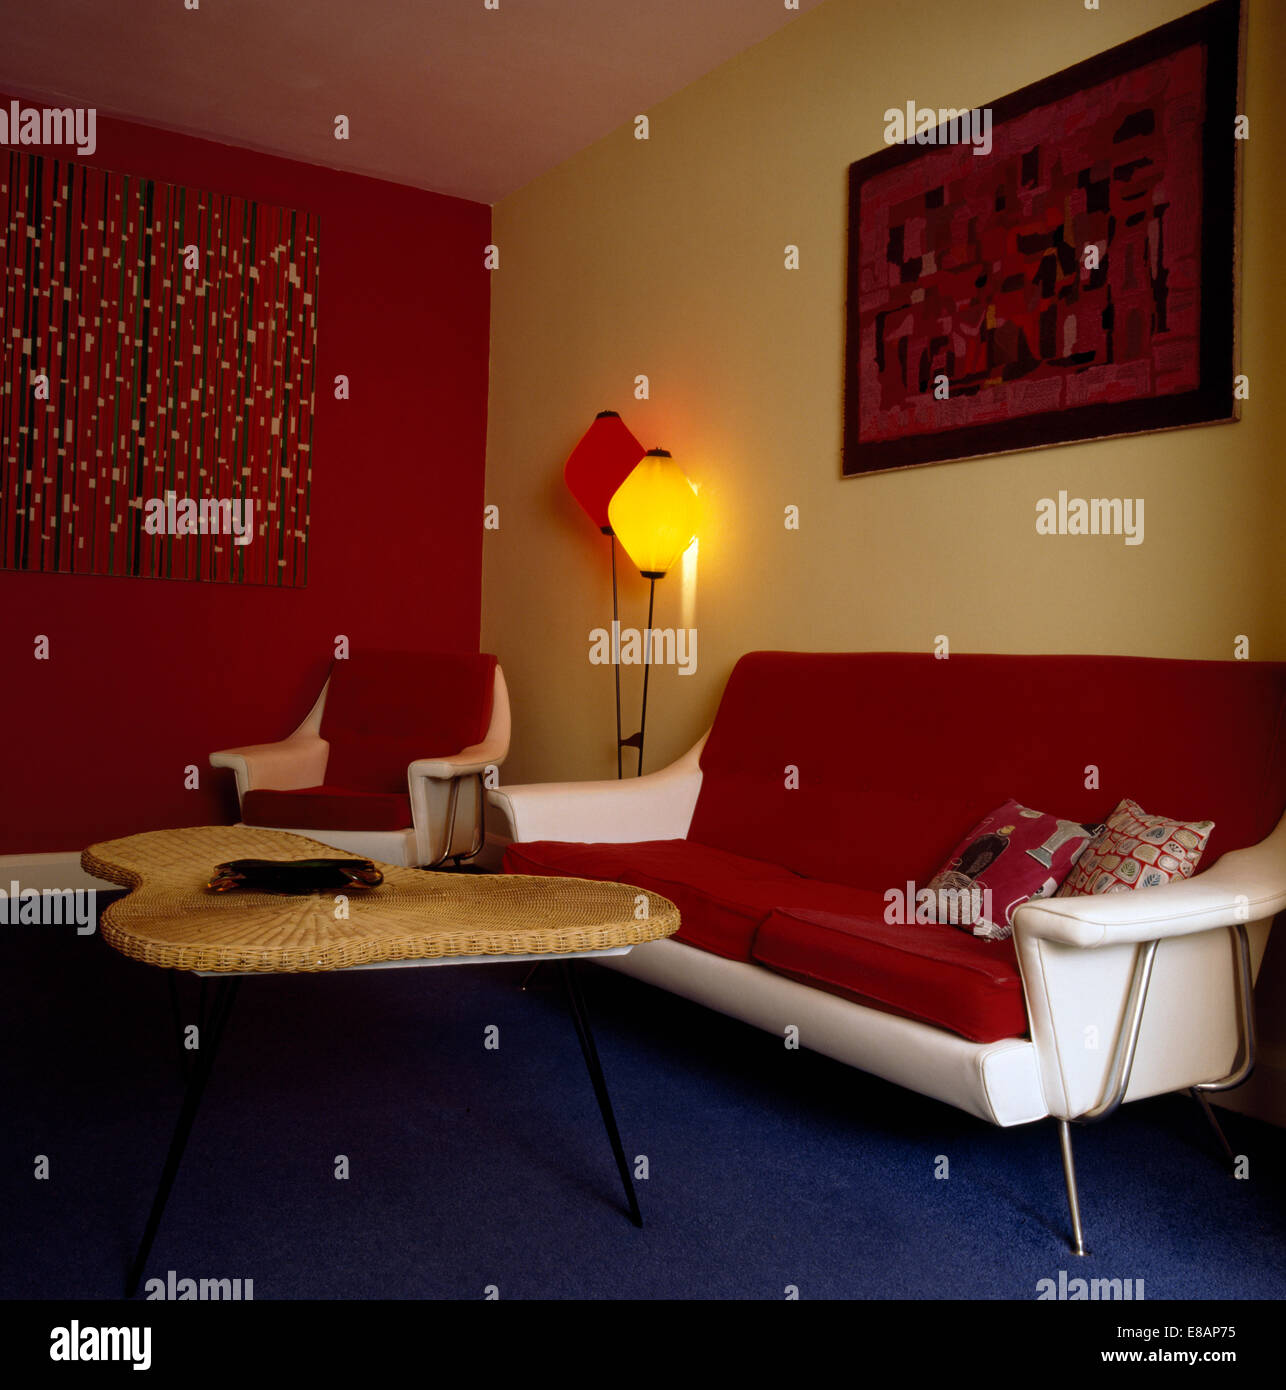 Red Cushions On White Leather Fifties Sofa In Living Room With Stock Photo Alamy